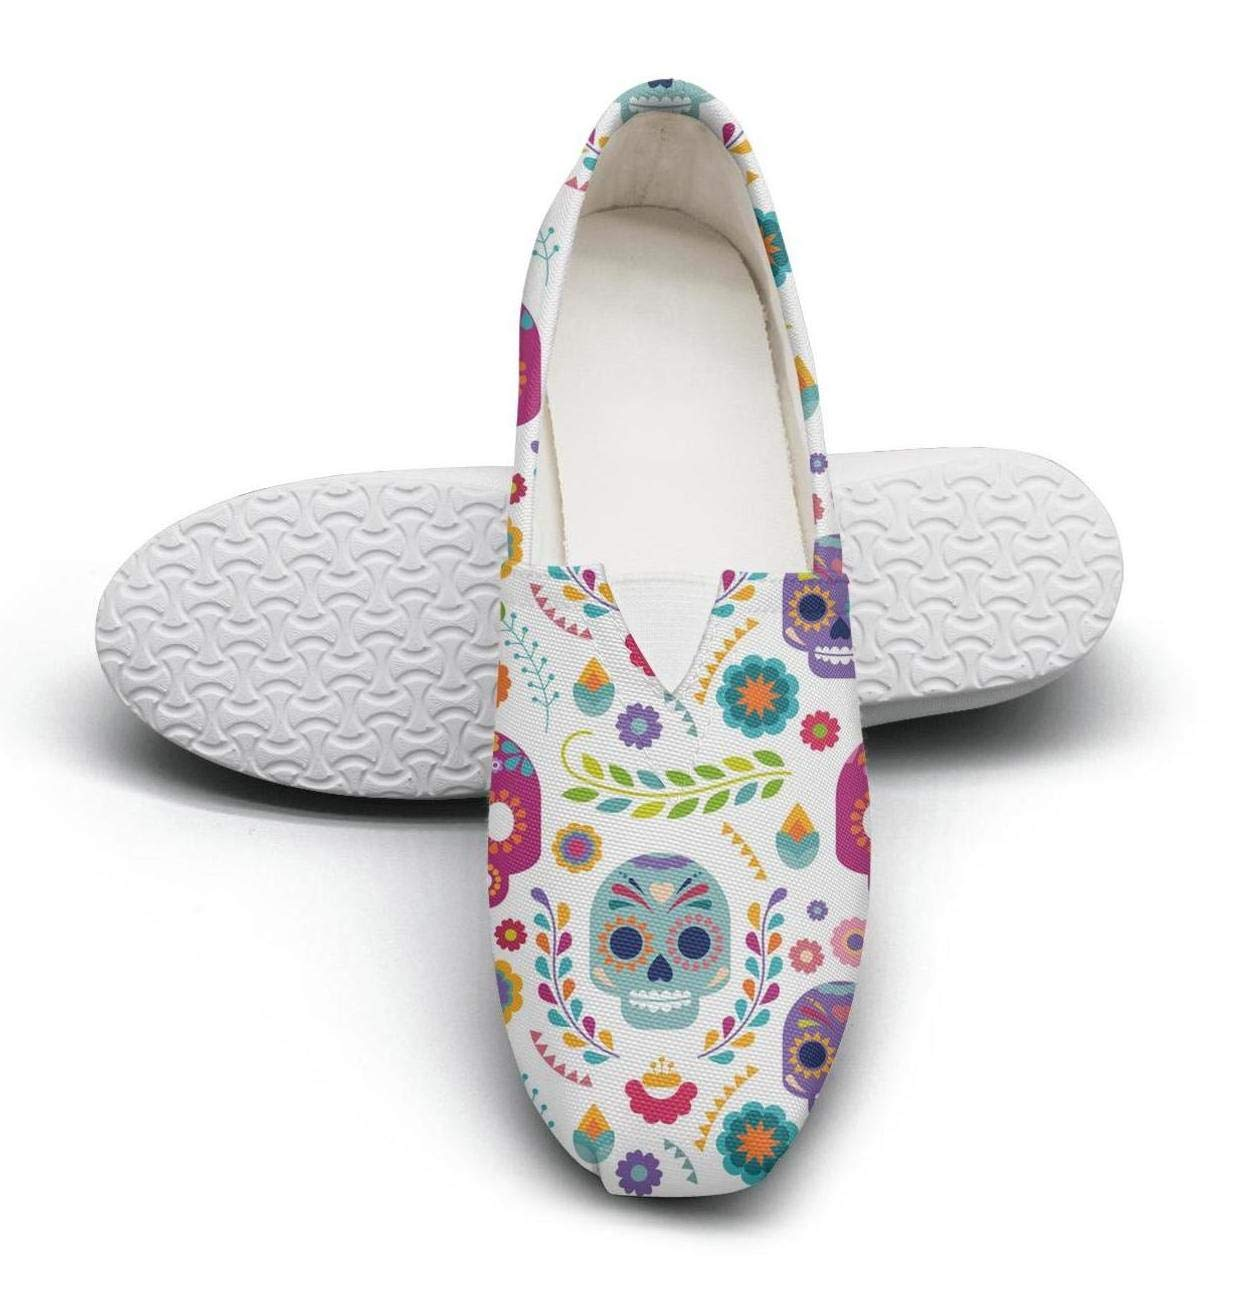 Classic Hip Hop Women's Canvas Flat Shoes-Mexico Skull and Flowers Style Comfortable Low Top Slip-On Sneaker by Hotqq